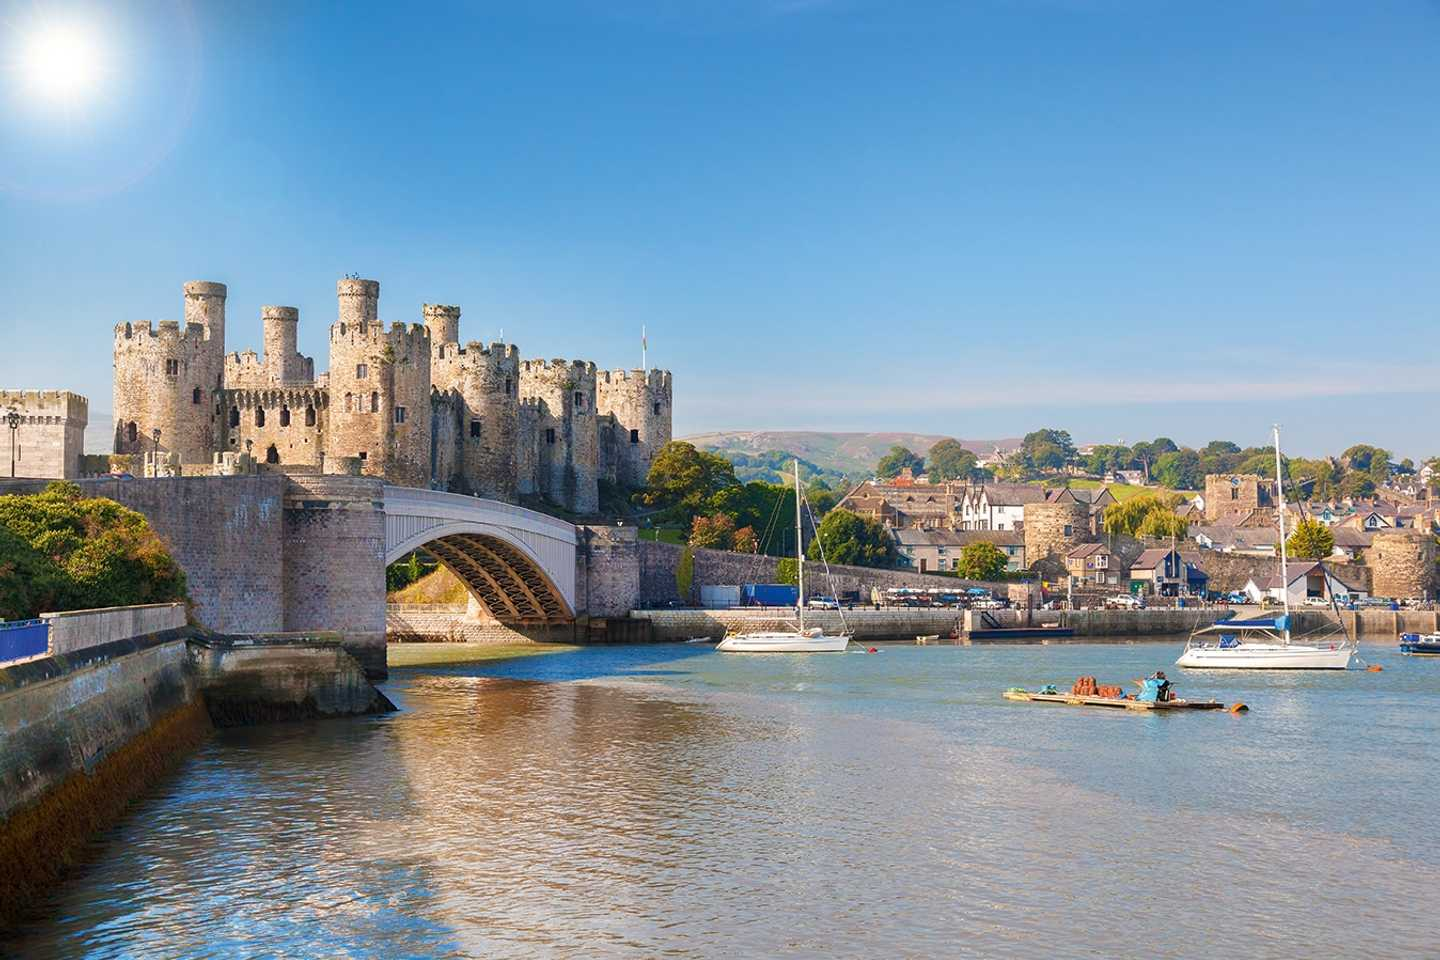 Conwy Castle overlooking the harbour